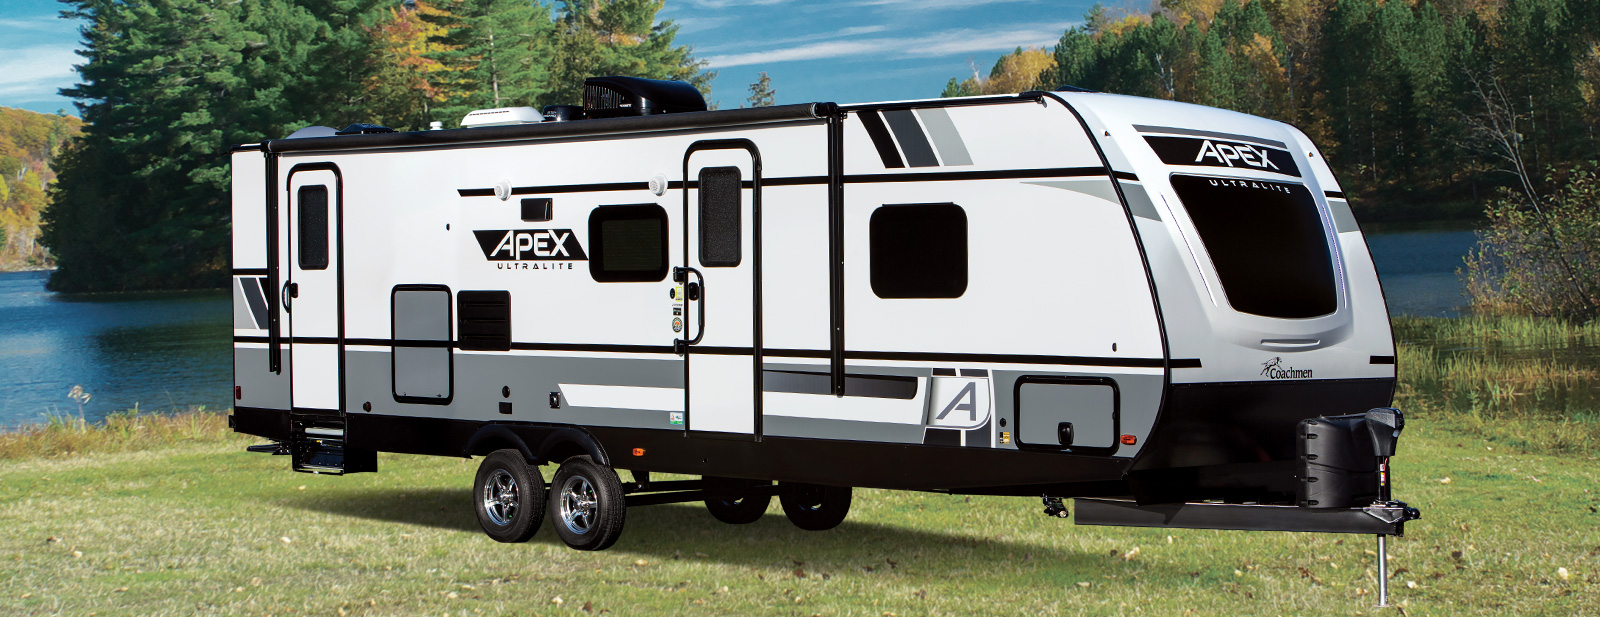 Apex Ultra Lite Travel Trailers By Coachmen Rv